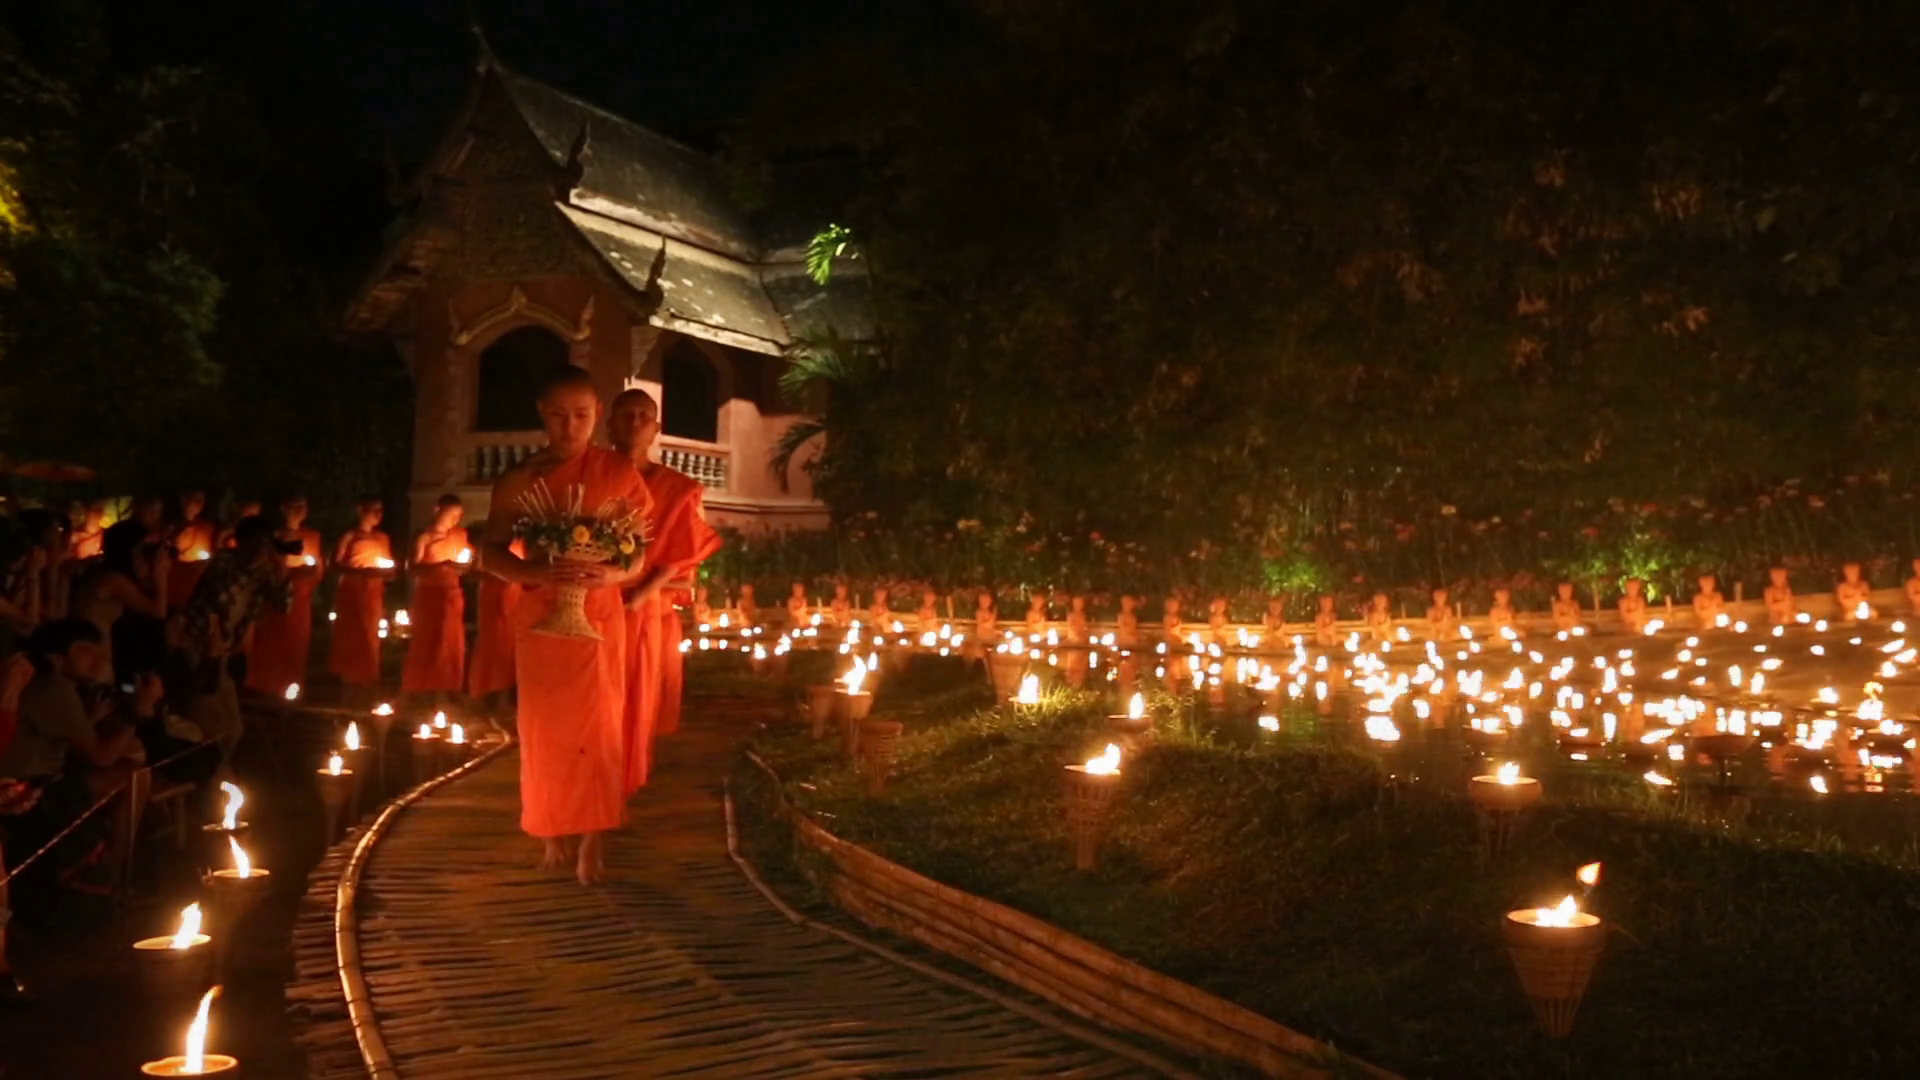 Monks lighting candles for Makha Bucha Day in Chiang Mai, Thailand.